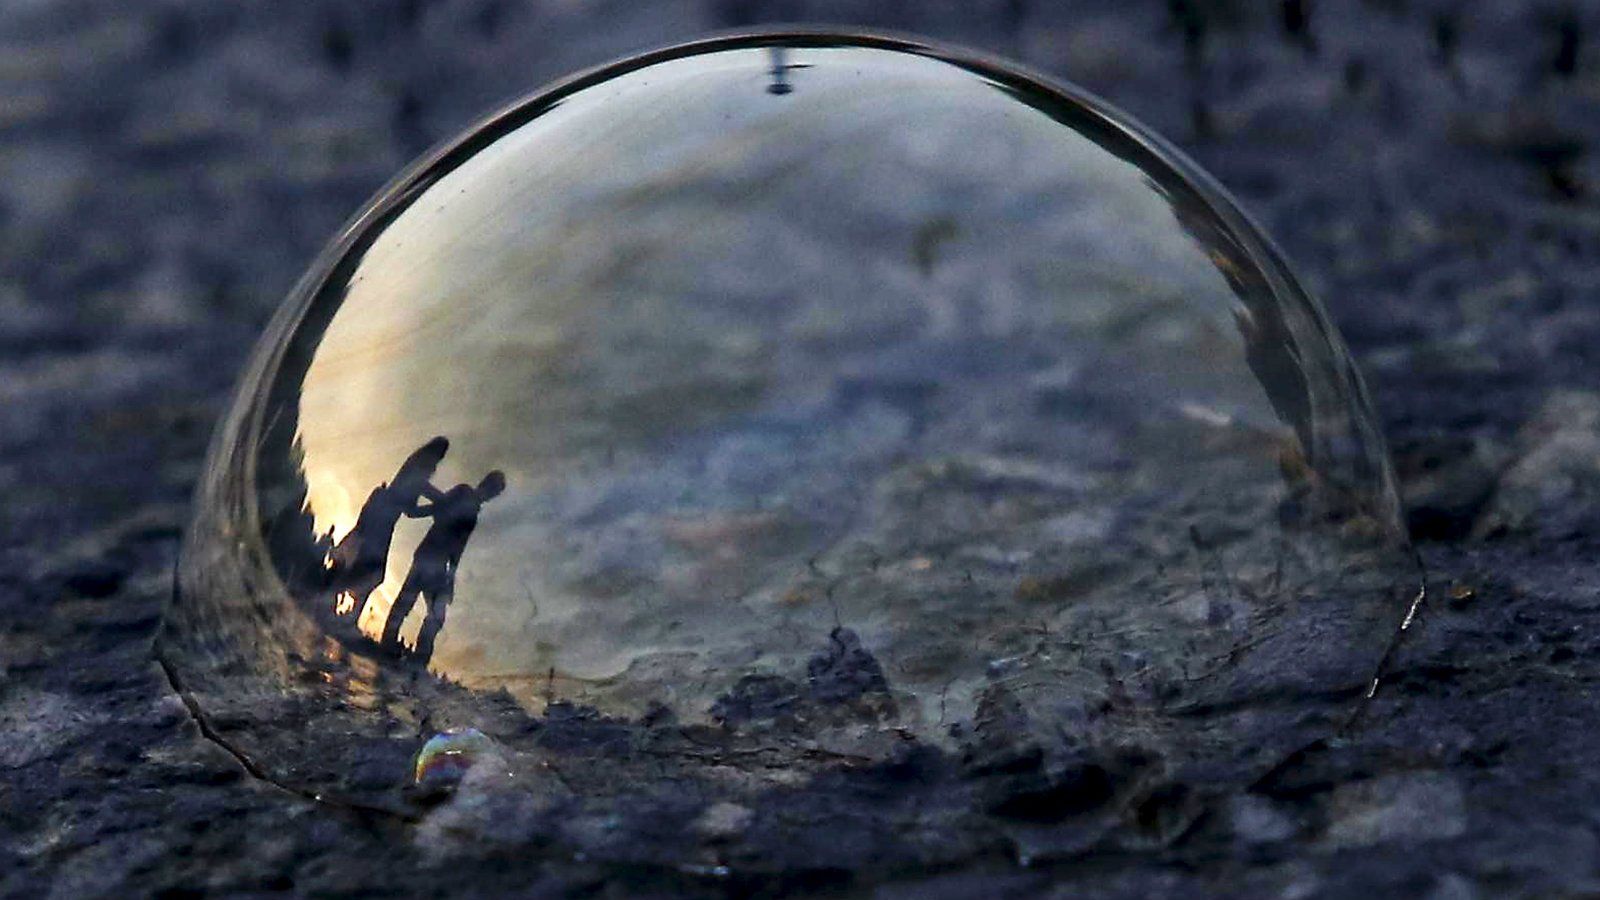 A soap bubble on a road in New Delhi.